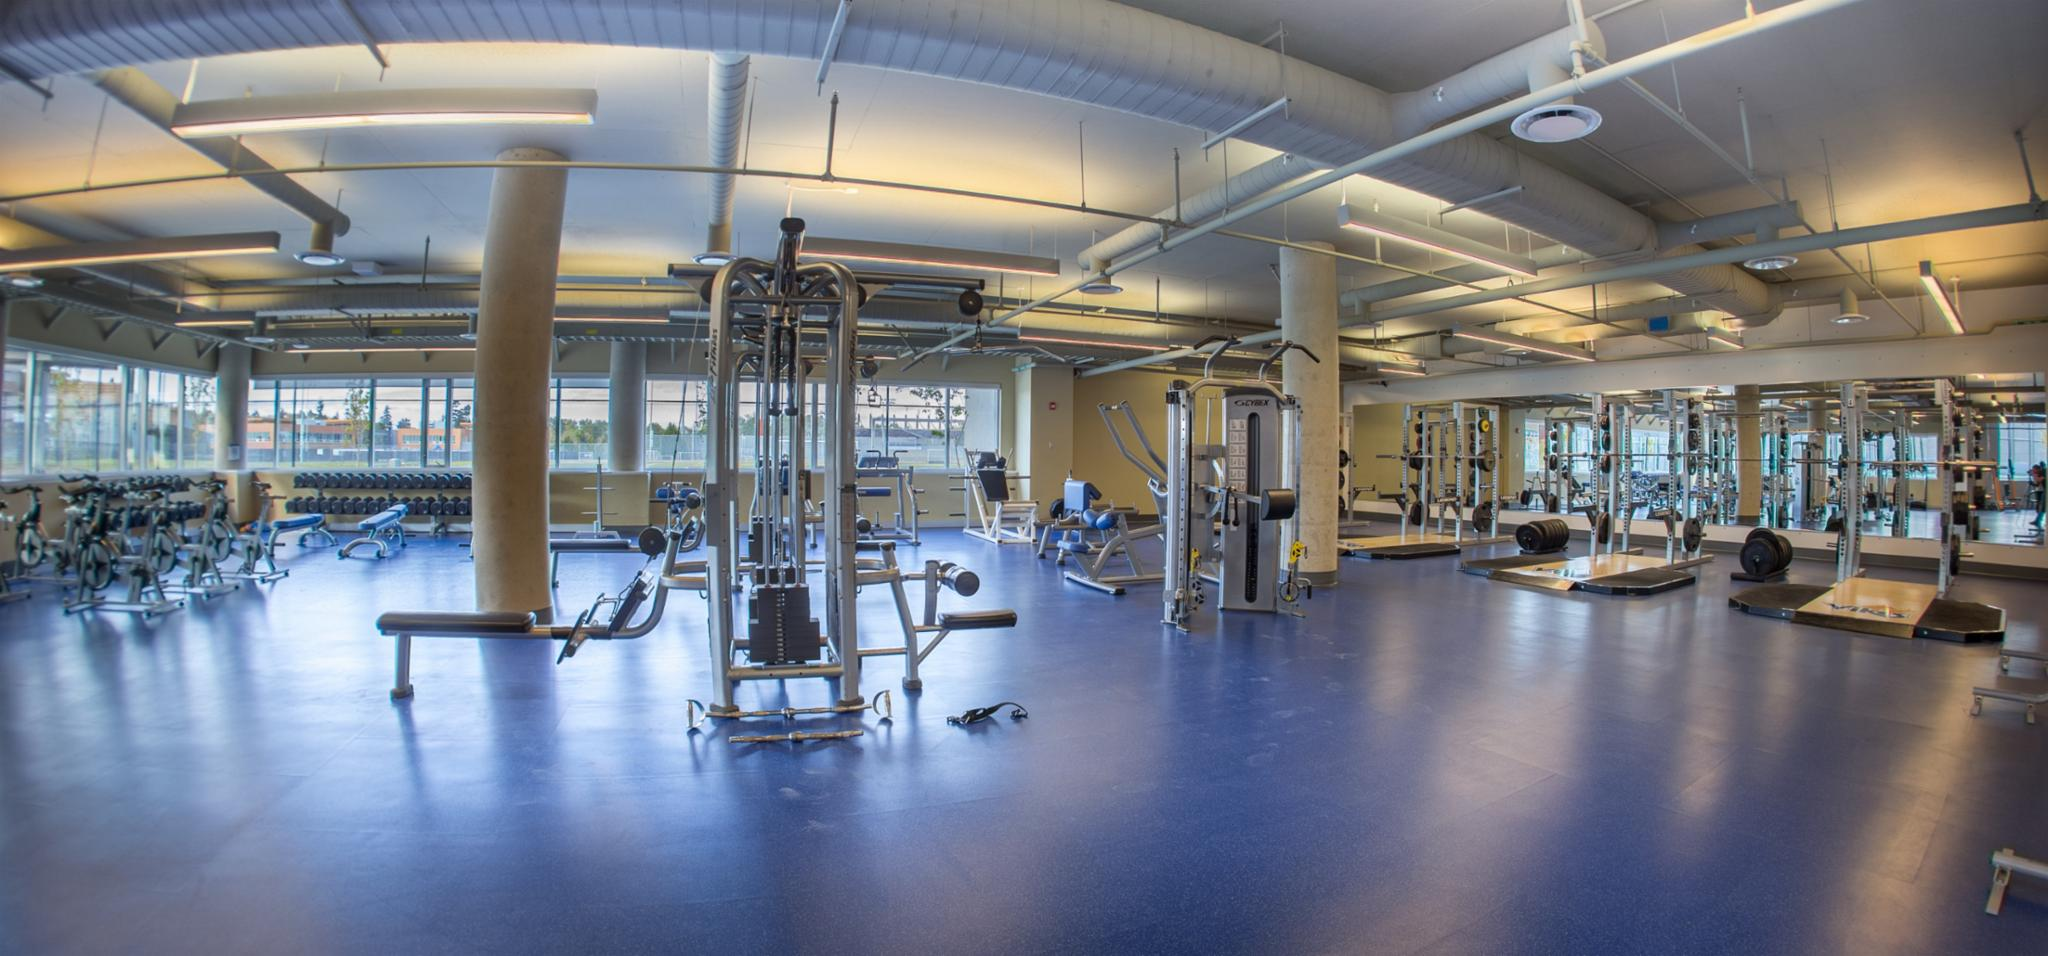 Experience University Of Victoria In Virtual Reality - Weight room design